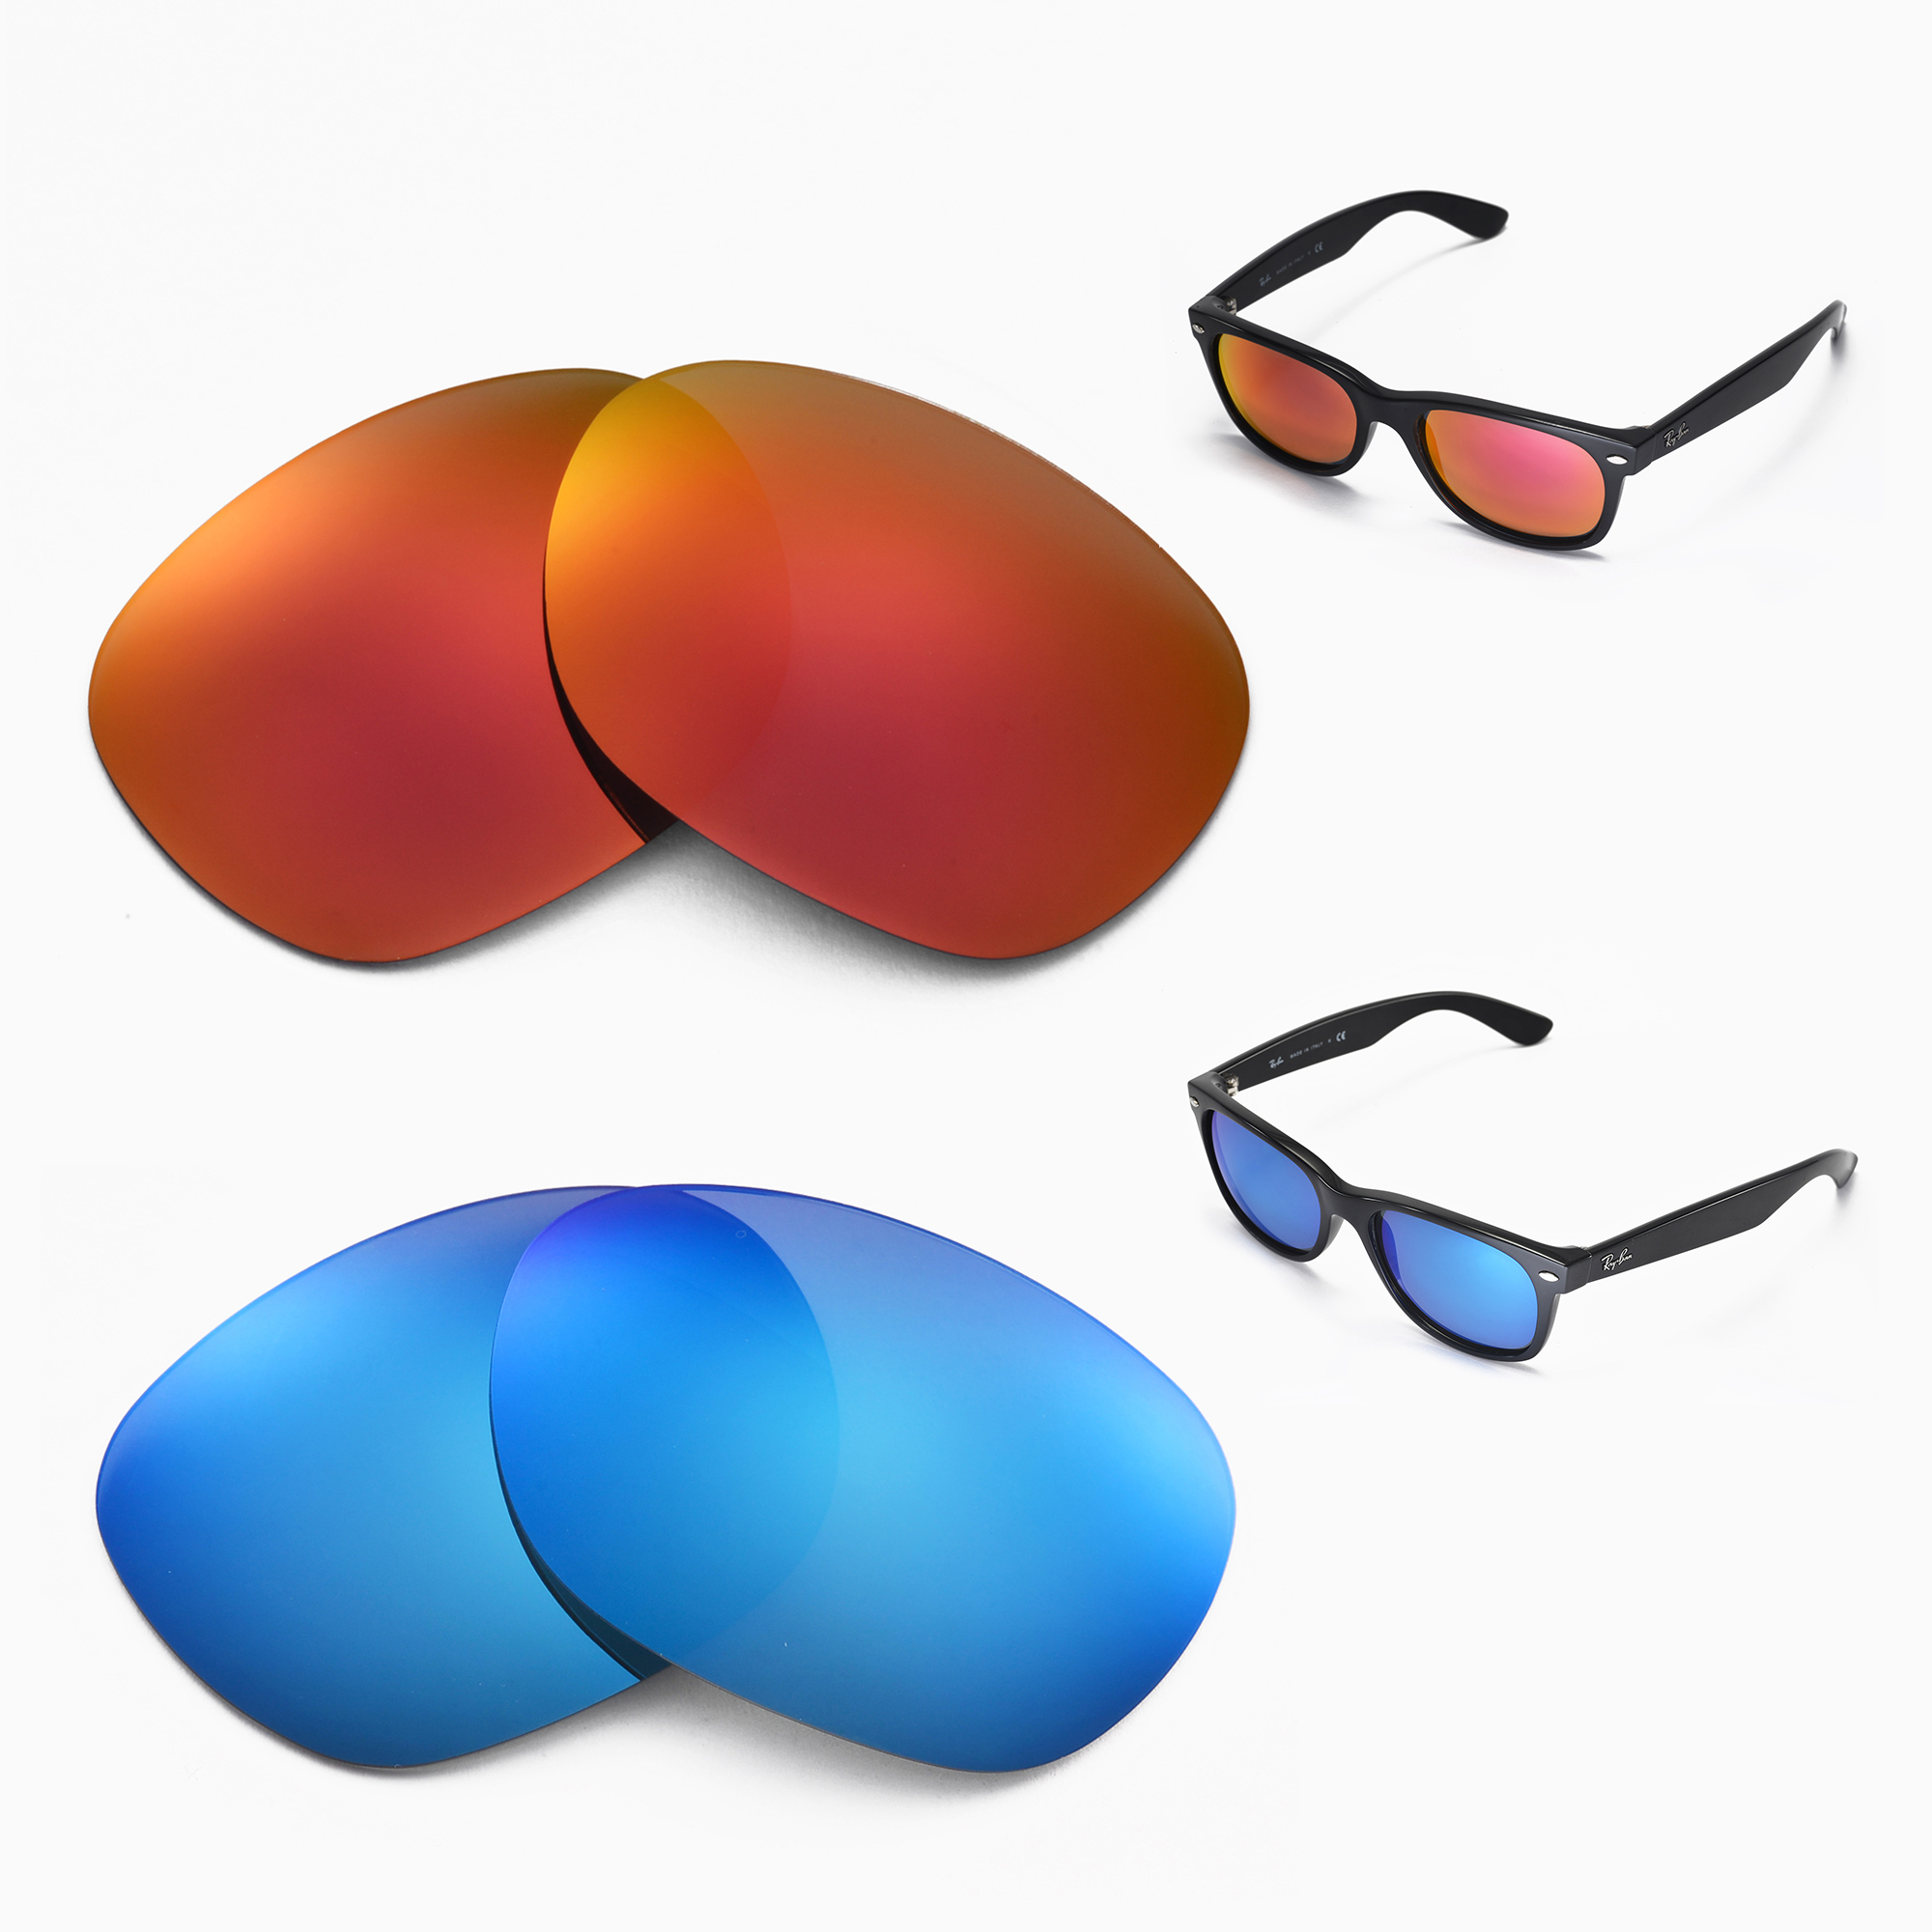 9a2d40a7bf Details about New Walleva Polarized Fire Red+ Ice Blue Lenses For Ray-Ban  Wayfarer RB2132 55mm